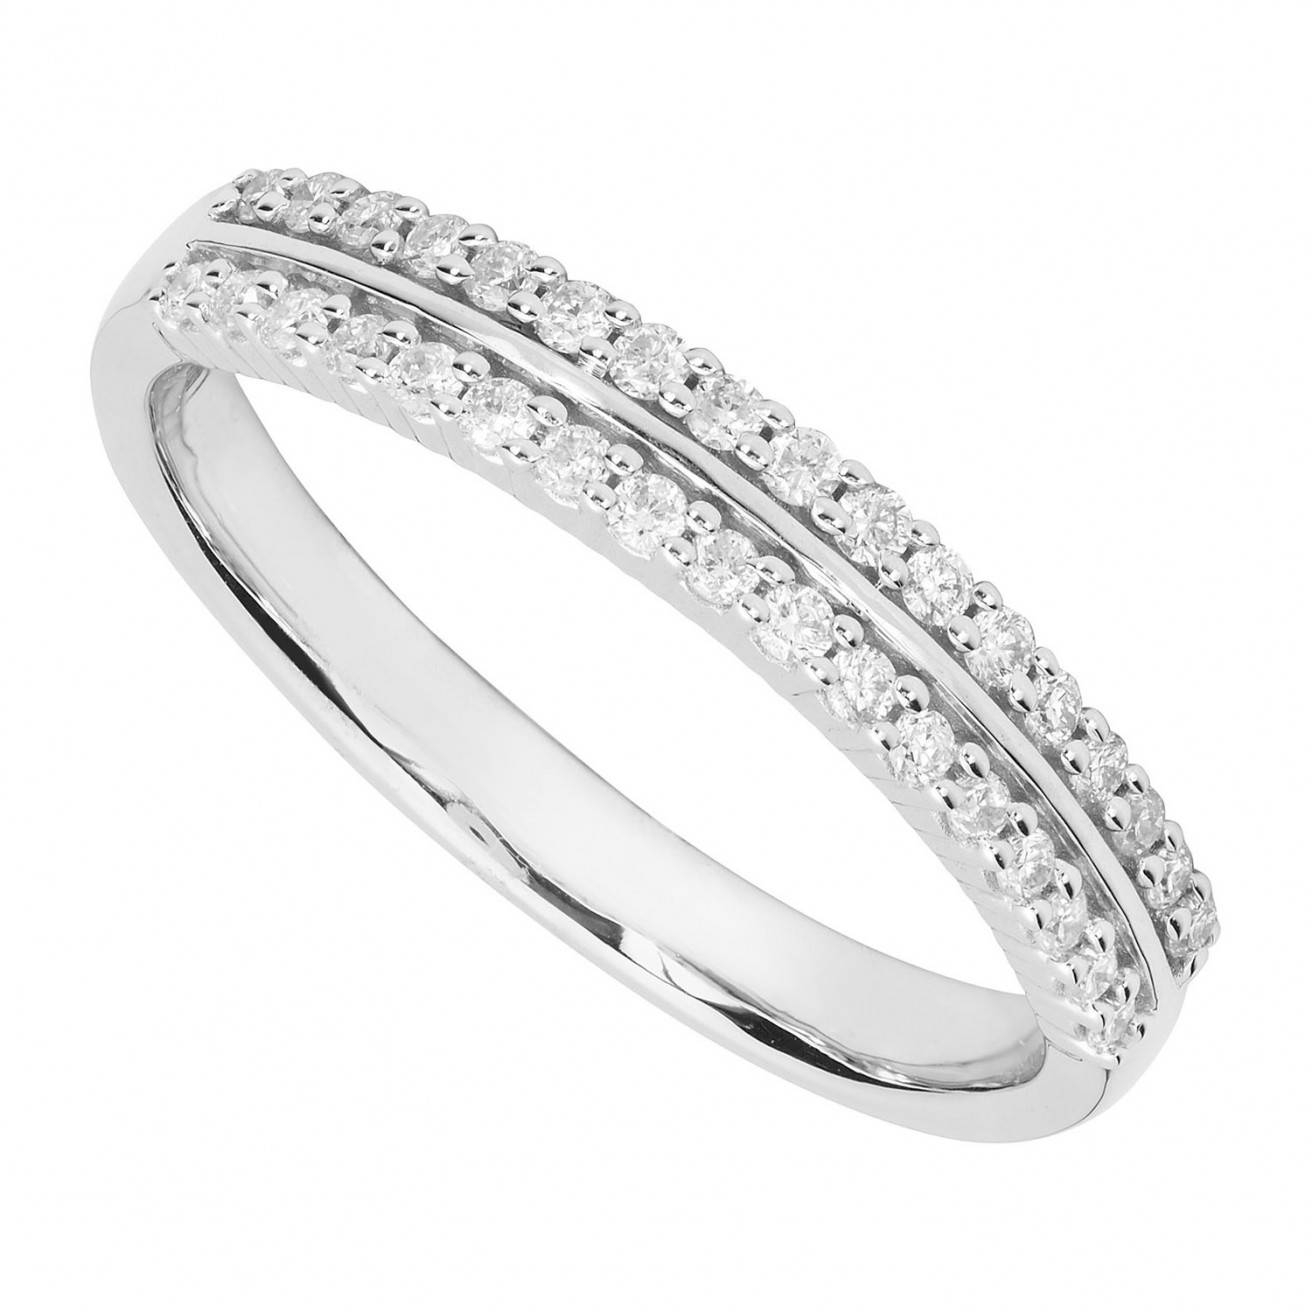 Buy White Gold Wedding Rings Online – Fraser Hart Regarding Twisted Diamond Wedding Bands (View 12 of 15)